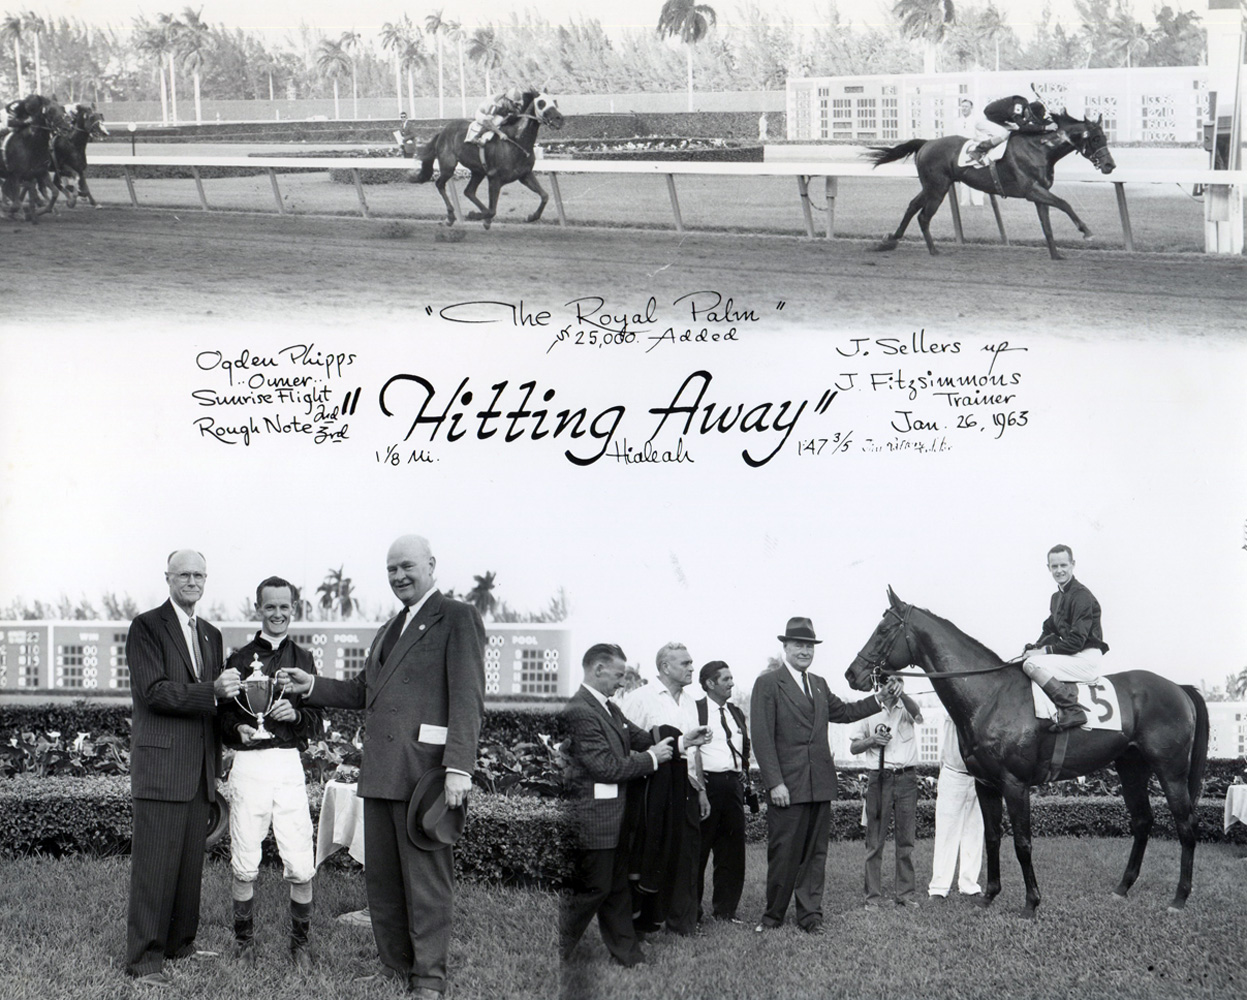 Win composite from the 1963 Royal Palm Handicap at Hialaeh, won by John Sellers and Hitting Away (Jim Raftery Turfotos/Museum Collection)